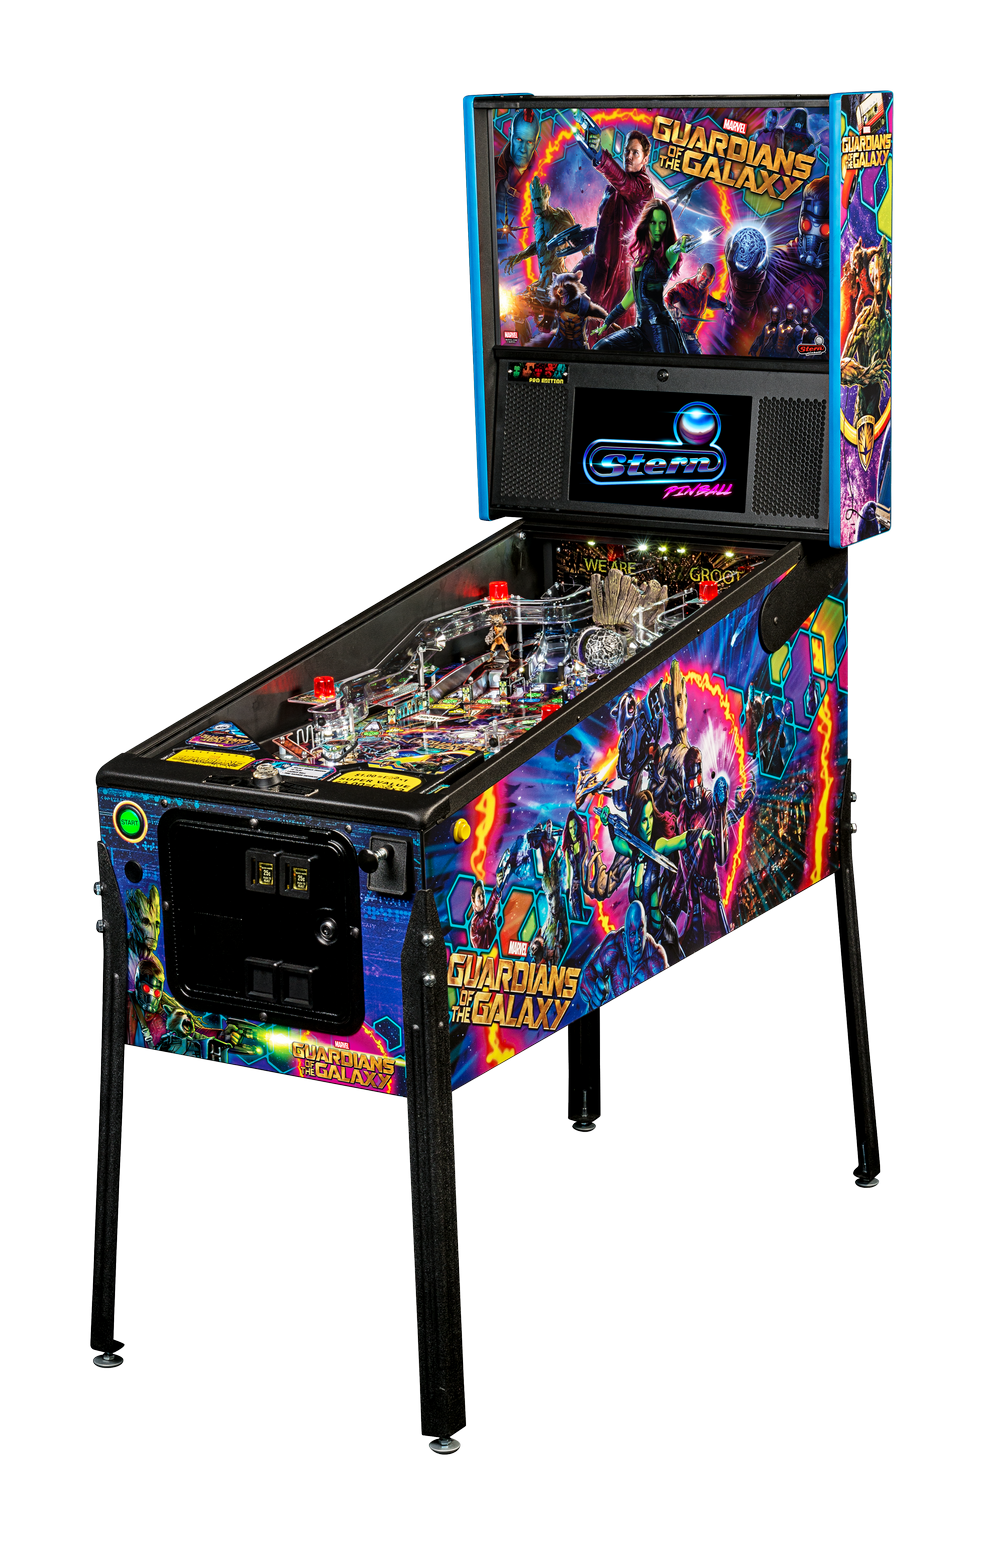 Guardians of the Galaxy Pinball Pro (Preorder)